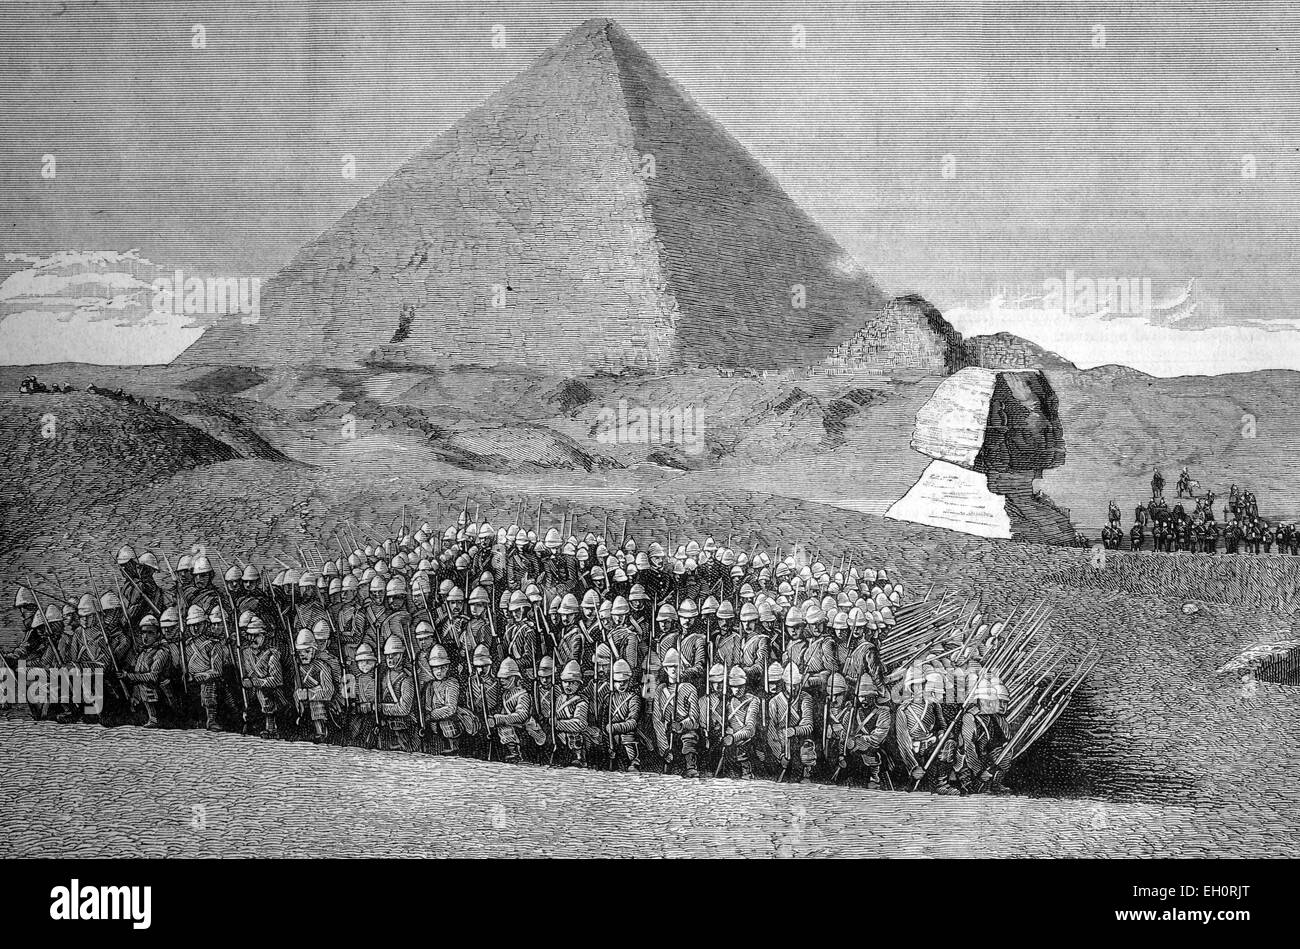 The war in Egypt, second battalion Highland light infantry picknicking at the Pyramids, Egypt, historic image, 1883 - Stock Image